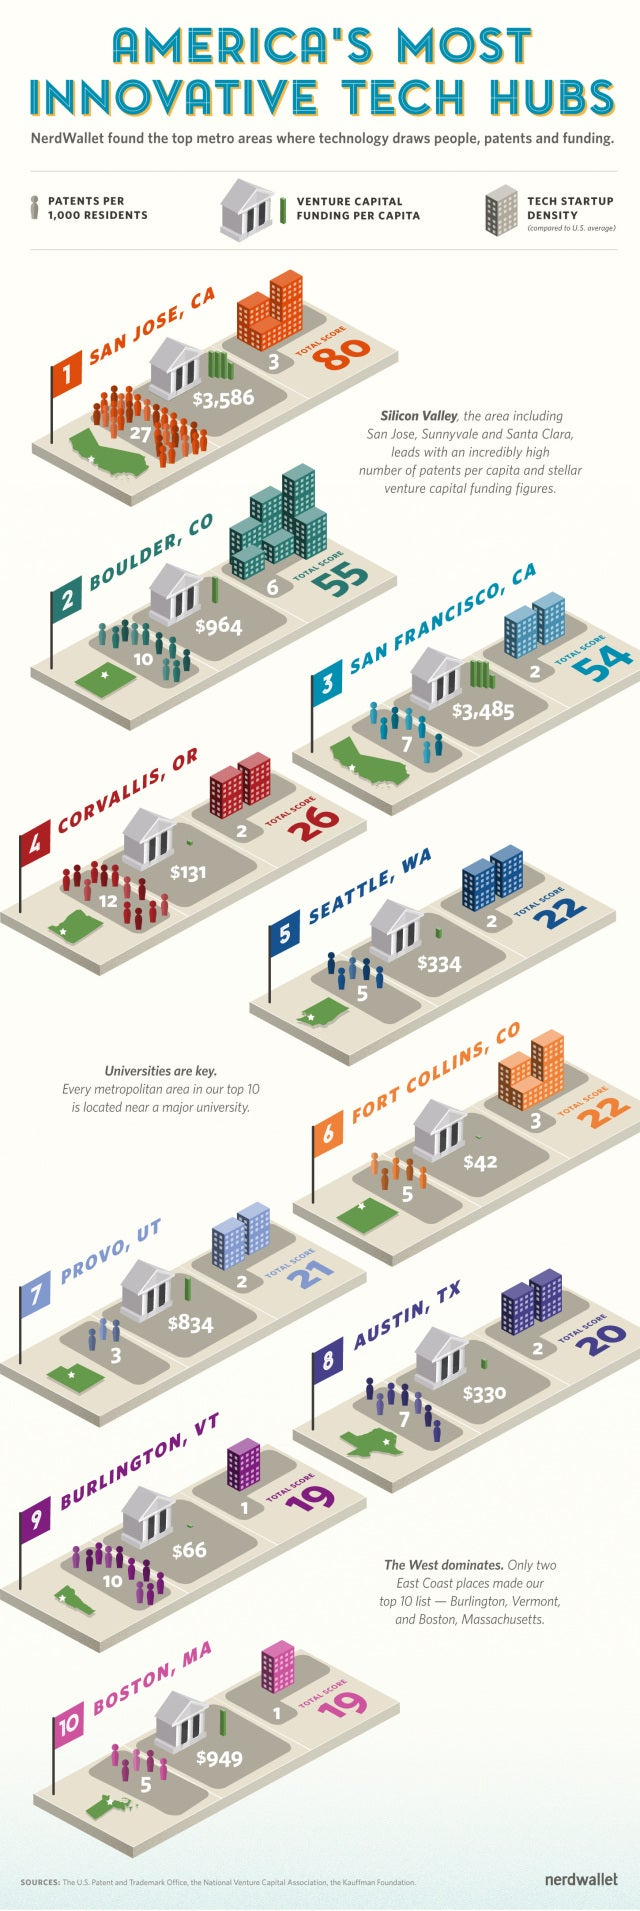 Most Innovative Tech Hubs in America